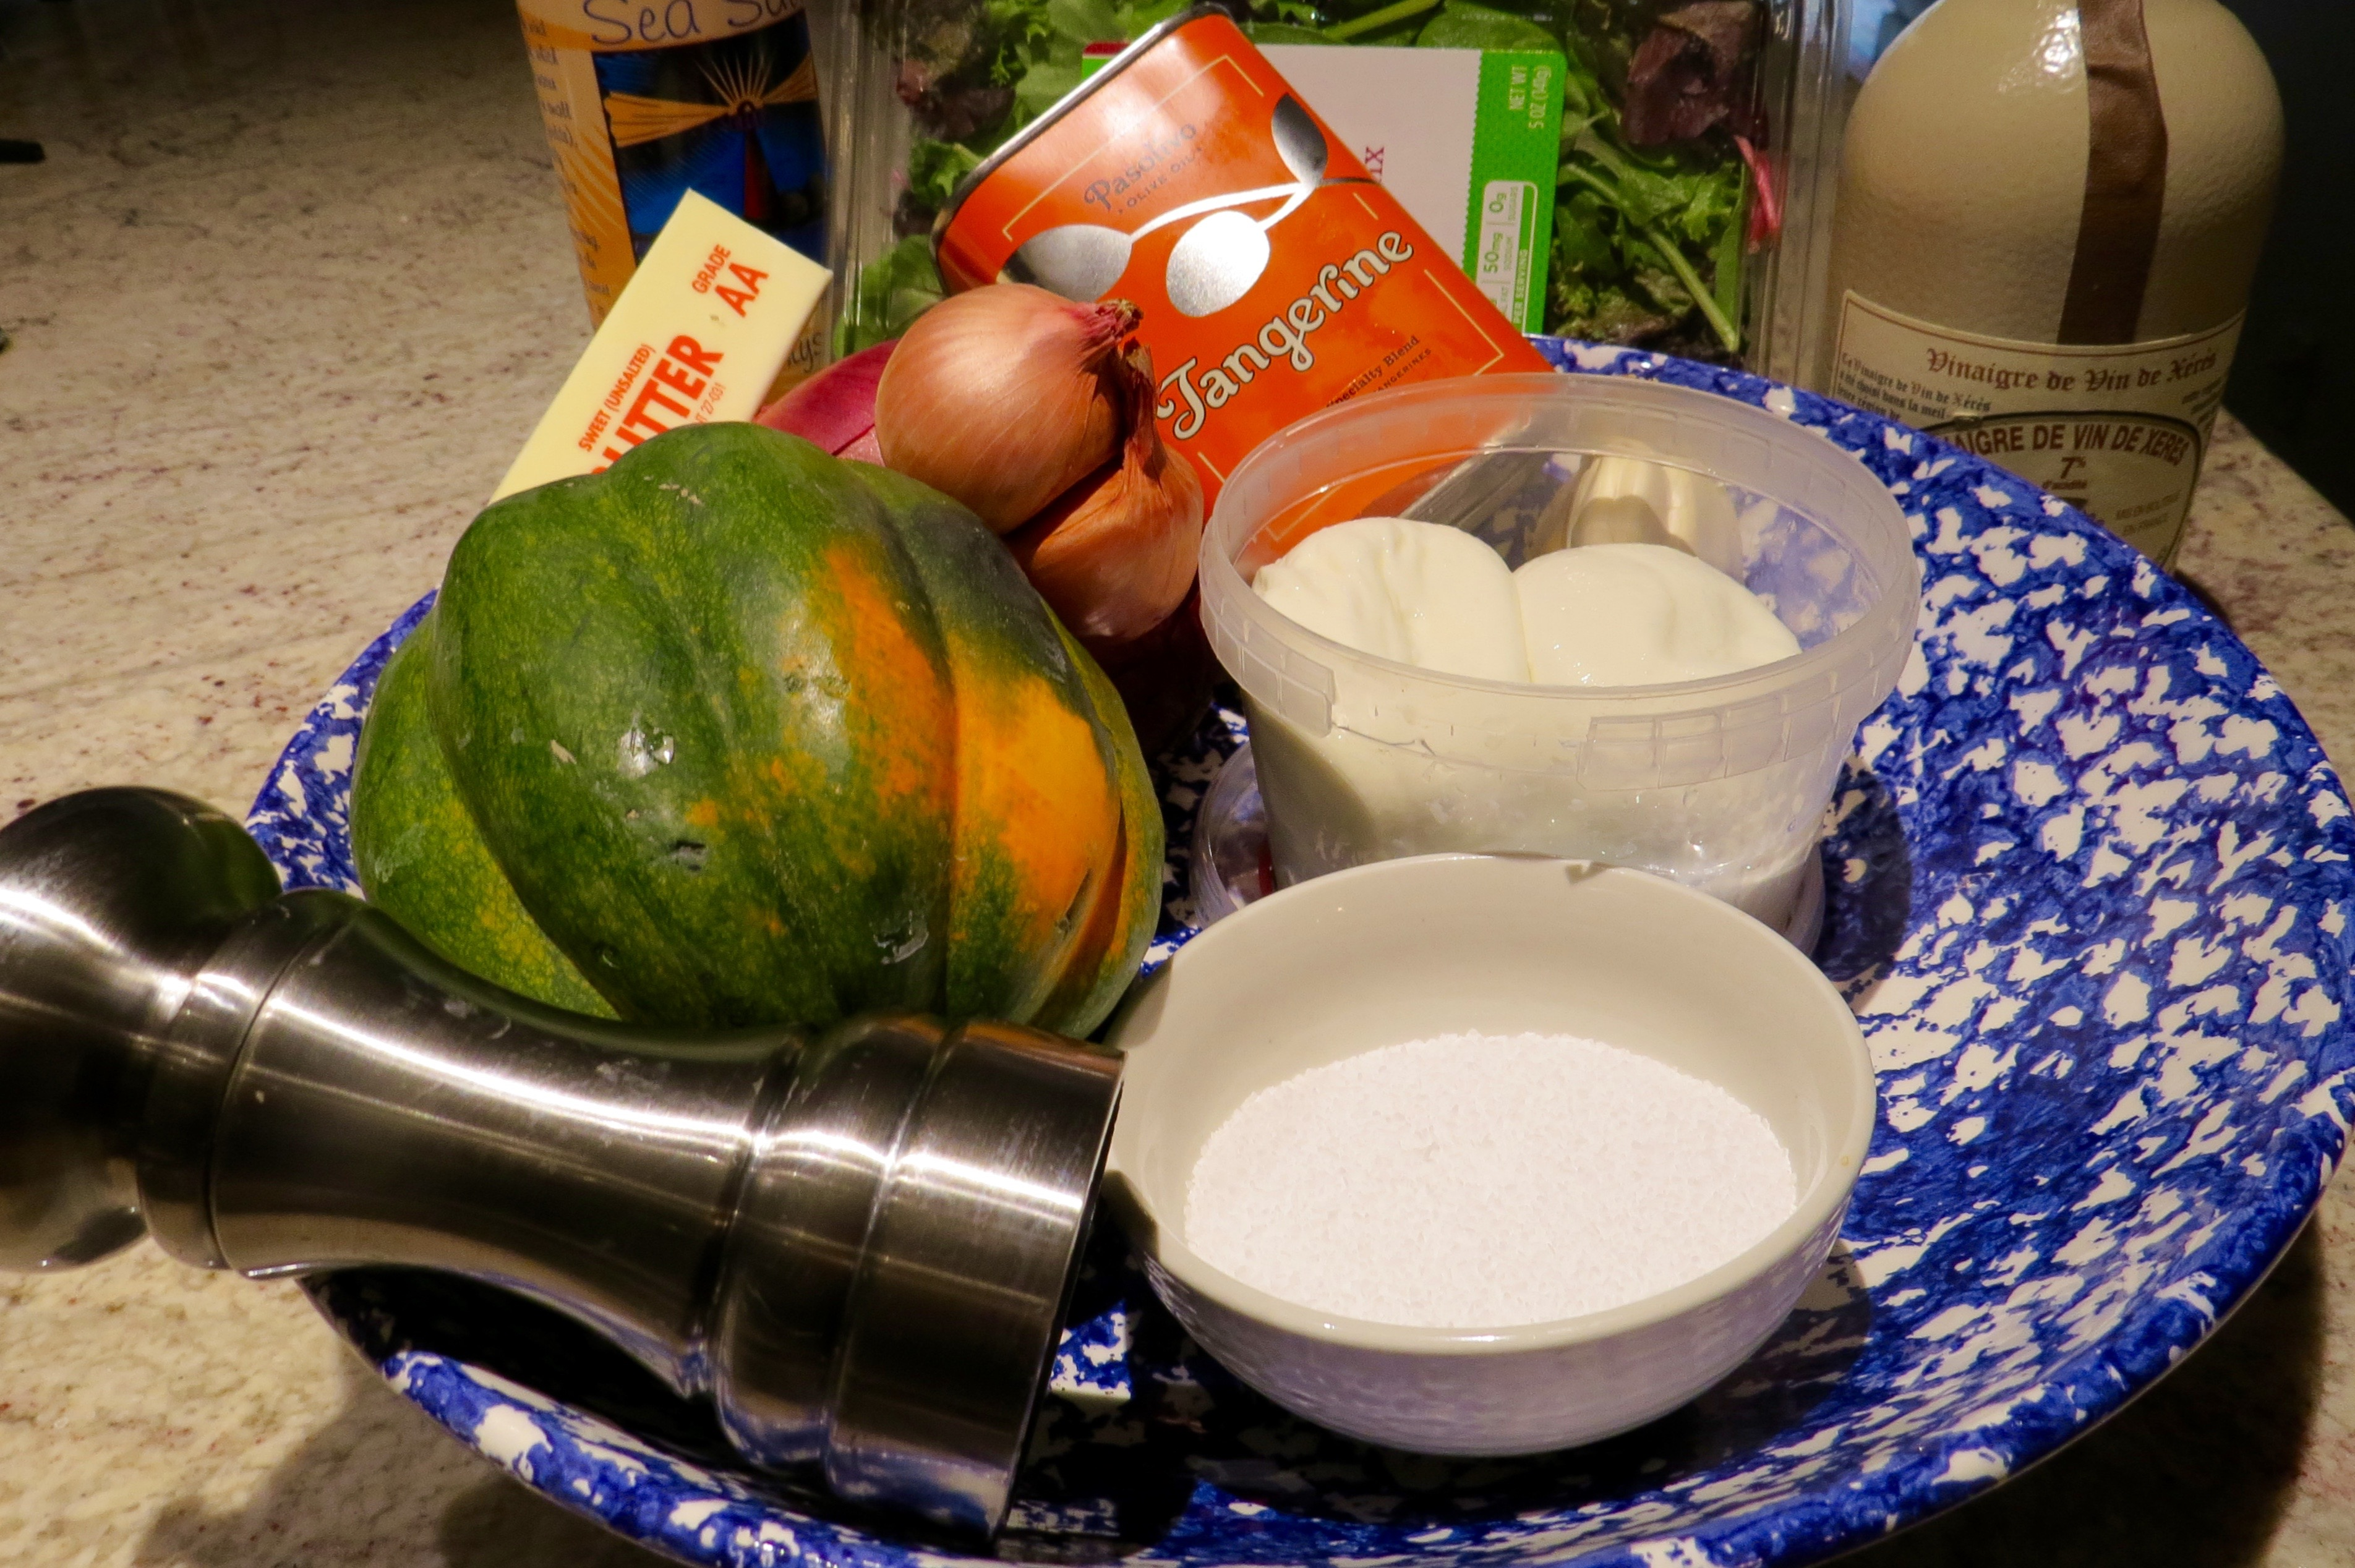 MISE en PLACE ( the necessary ingredients) for ROASTED ACORN SQUASH WITH GARLIC BUTTER and BURRATA